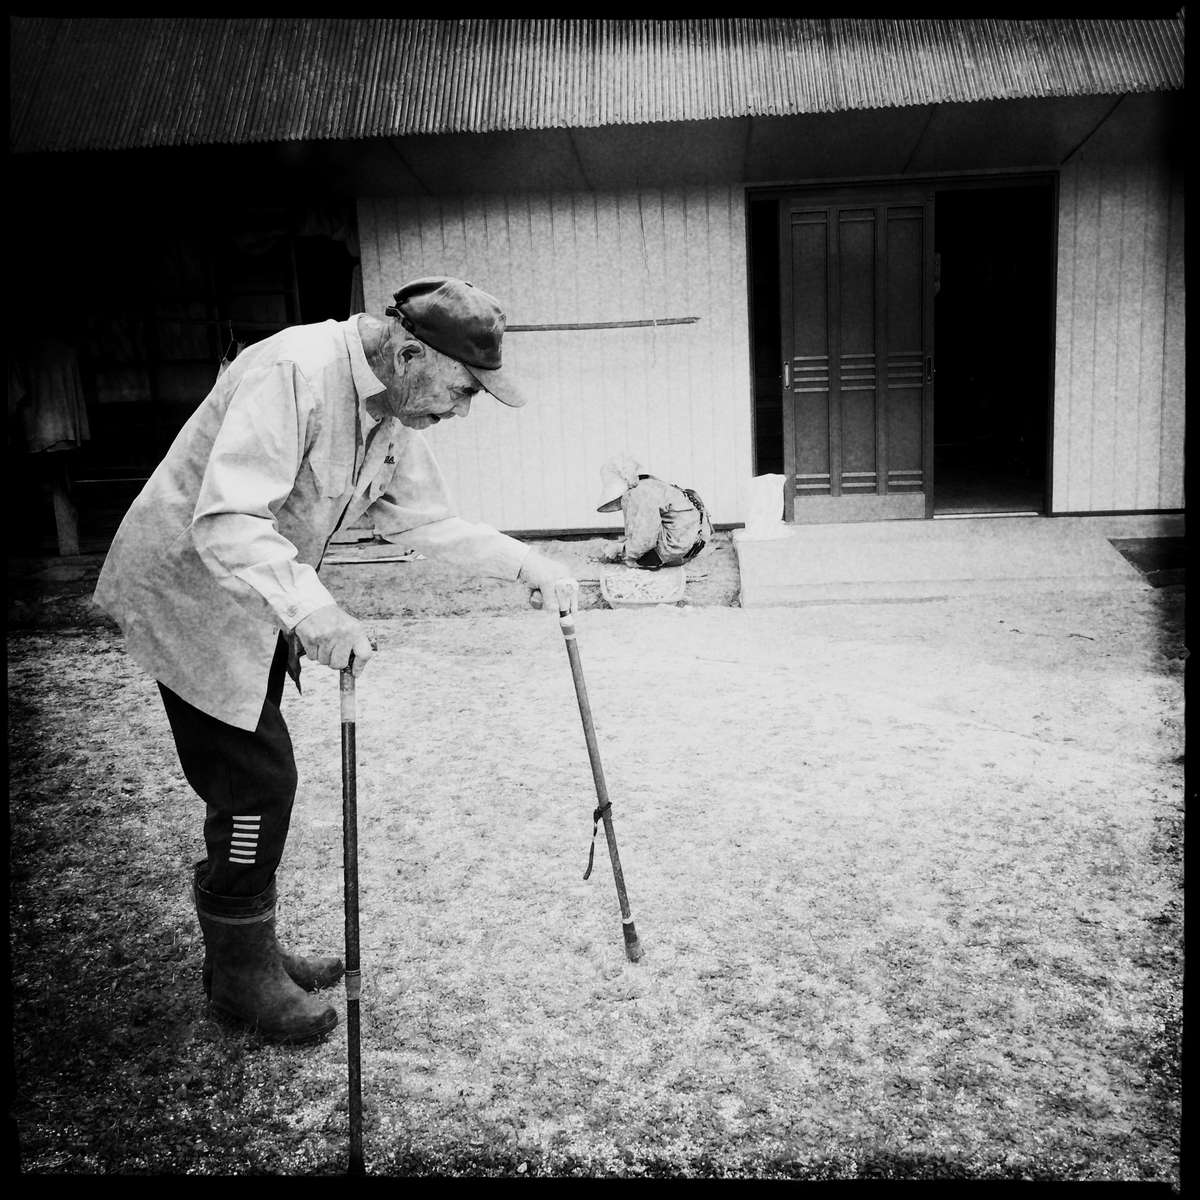 Japan's Nuclear Power Plant Belt: 86 year old handy-capped man practices to move his leg at his house in extremely depopulating Oku-Izumo in Shimane, one of the nuke-plant prefectures in Japan. Meanwhile his wife is peeling peas to help their living. All of nuke power plant regions and nearby have faced the drastic depopulation, the shrinking job market and the aging society. That was one of the biggest reasons nuke reactors were created in such areas, though after the 2011 Fukushima nuke power plant disaster, all reactors have been suspend for the operation. Yet, the Japanese government and many residents of such nuke power plant belt want to resume. #japan's_nuclear_power_plant_belt #old_people #oku_izumo #depopulation #aging_society #shimane #japan #rural_area #countryside #handy_capped